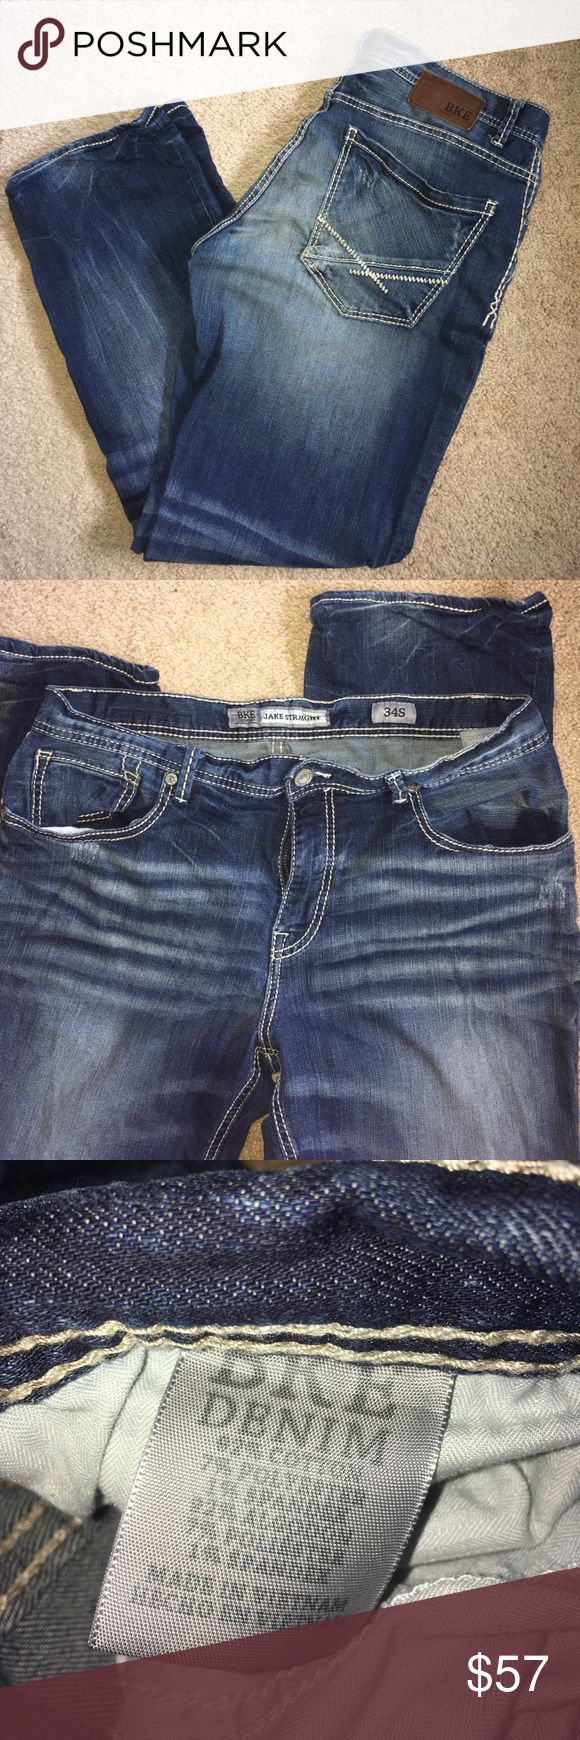 """BKE Guy's Jake 34 Straight Jake Straight 34S in like new condition! Inseam: 30"""". Buckle Store purchased. Questions please ask. Pet home/smoke free. 😎🤘🏻 Buckle Jeans Straight"""